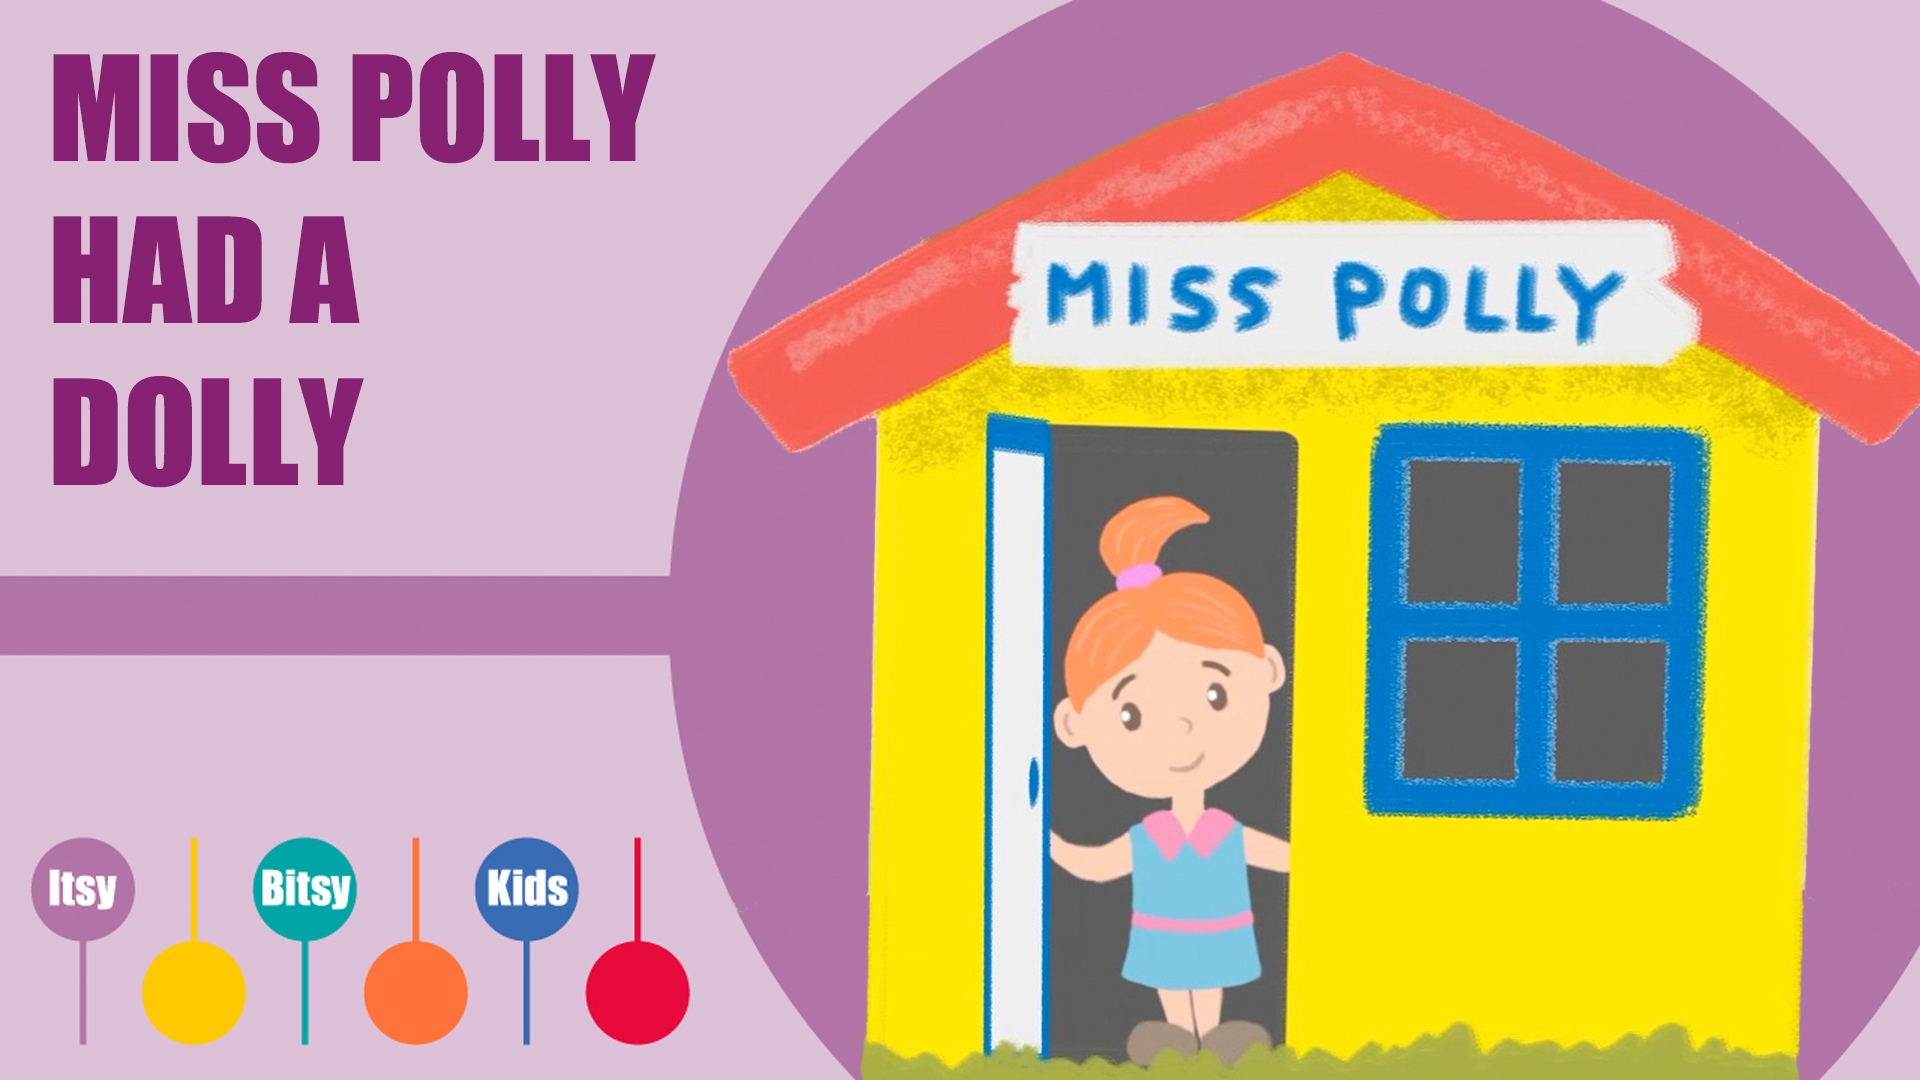 Miss Polly Had A Dolly Sheet Music With Chords And Lyrics   Itsy Bitsy Kids Music